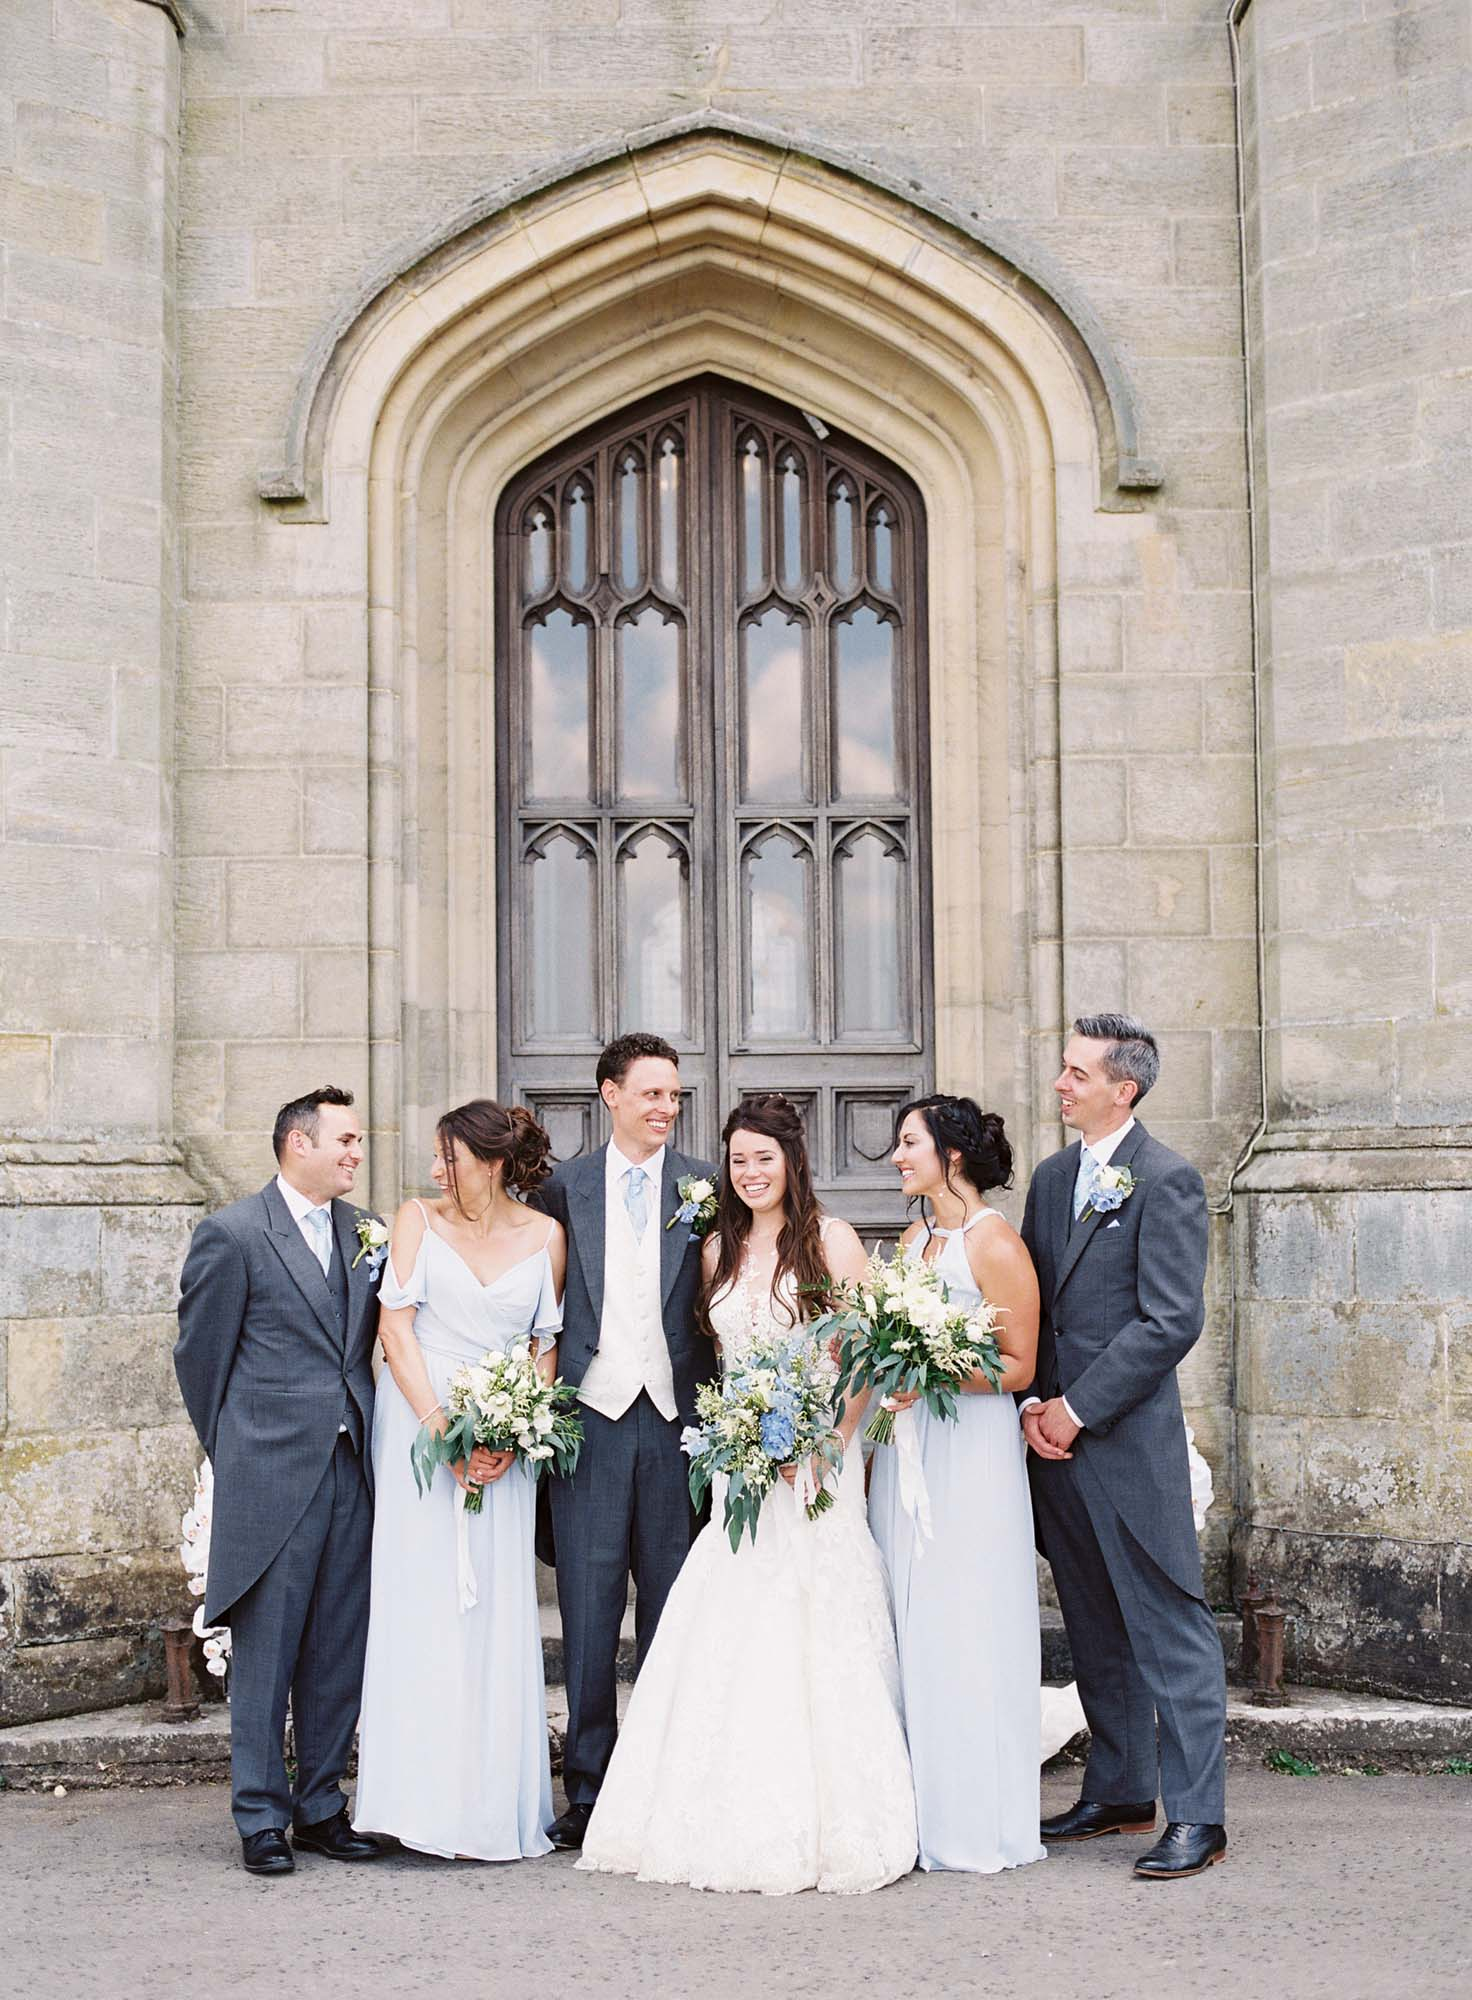 Bridal party laughing in natural wedding photography at Chiddingstone Castle wedding